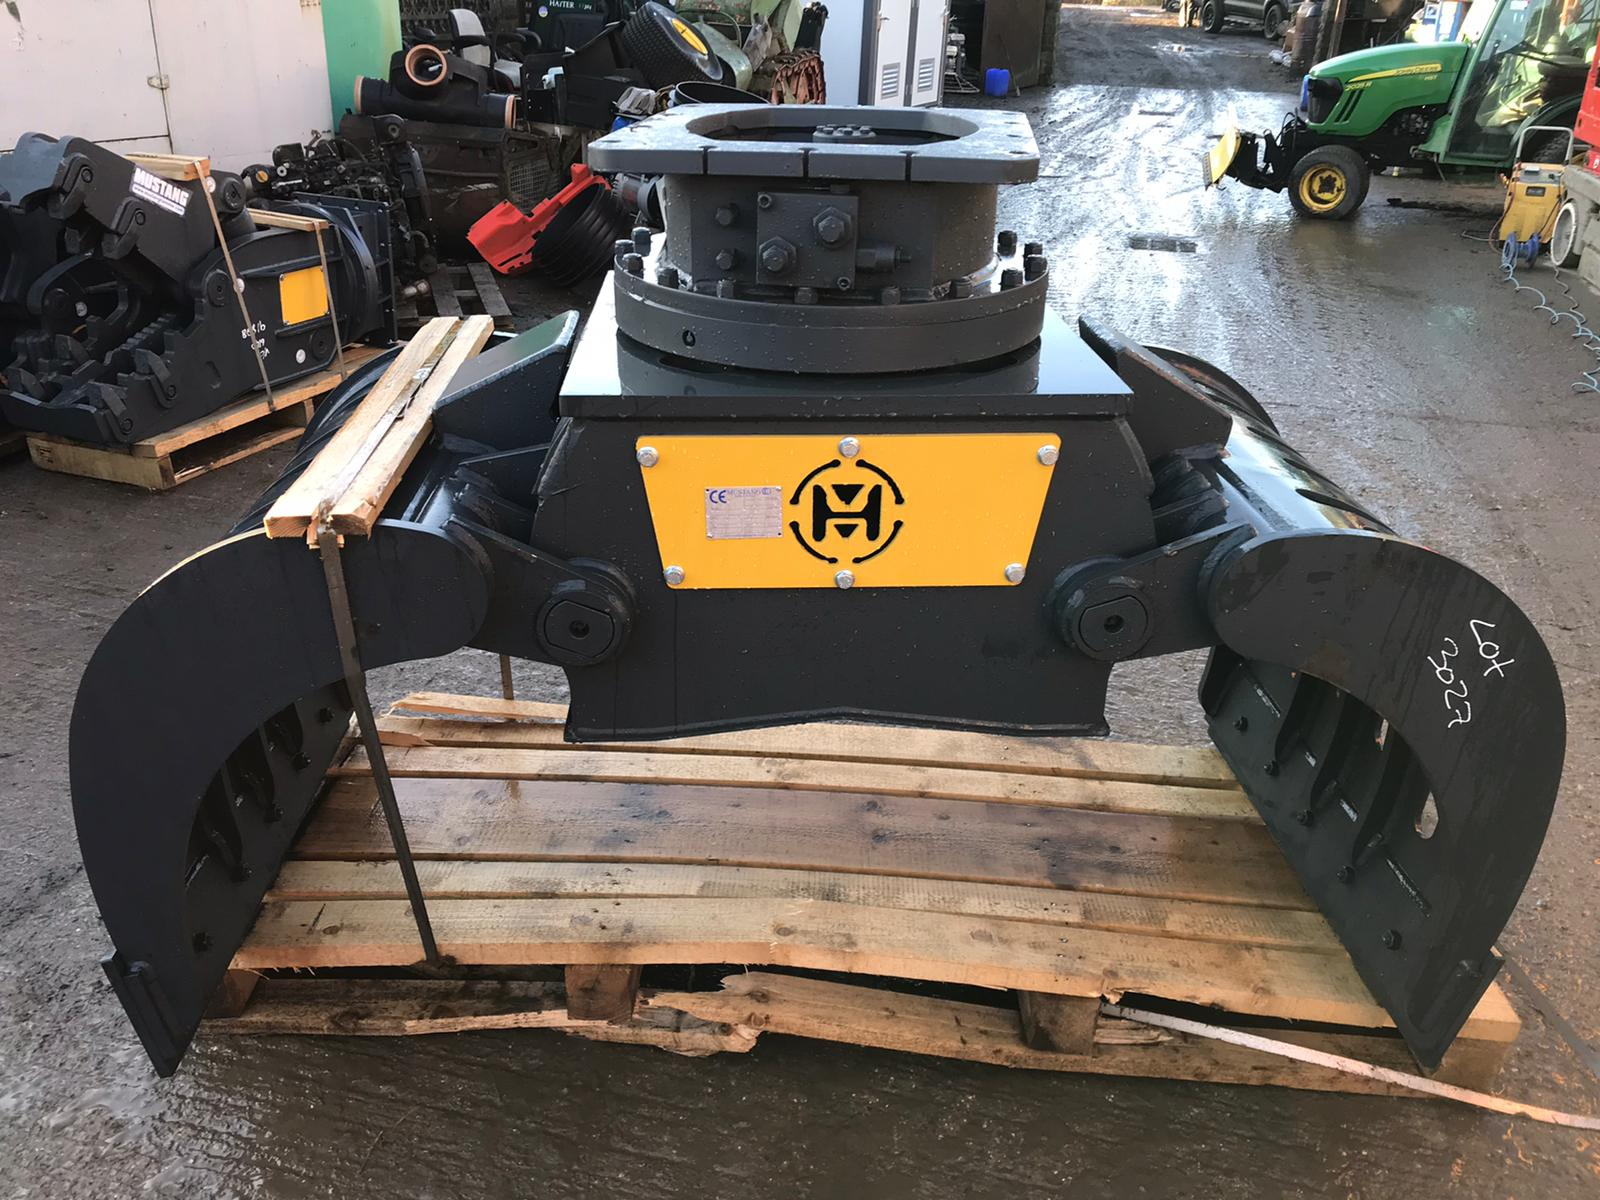 MUSTANG GRP1000 ROTATING GRAPPLE, YEAR 2019, NEW AND UNUSED - TO SUIT 13-19 TON EXCAVATOR *PLUS VAT* - Image 2 of 6